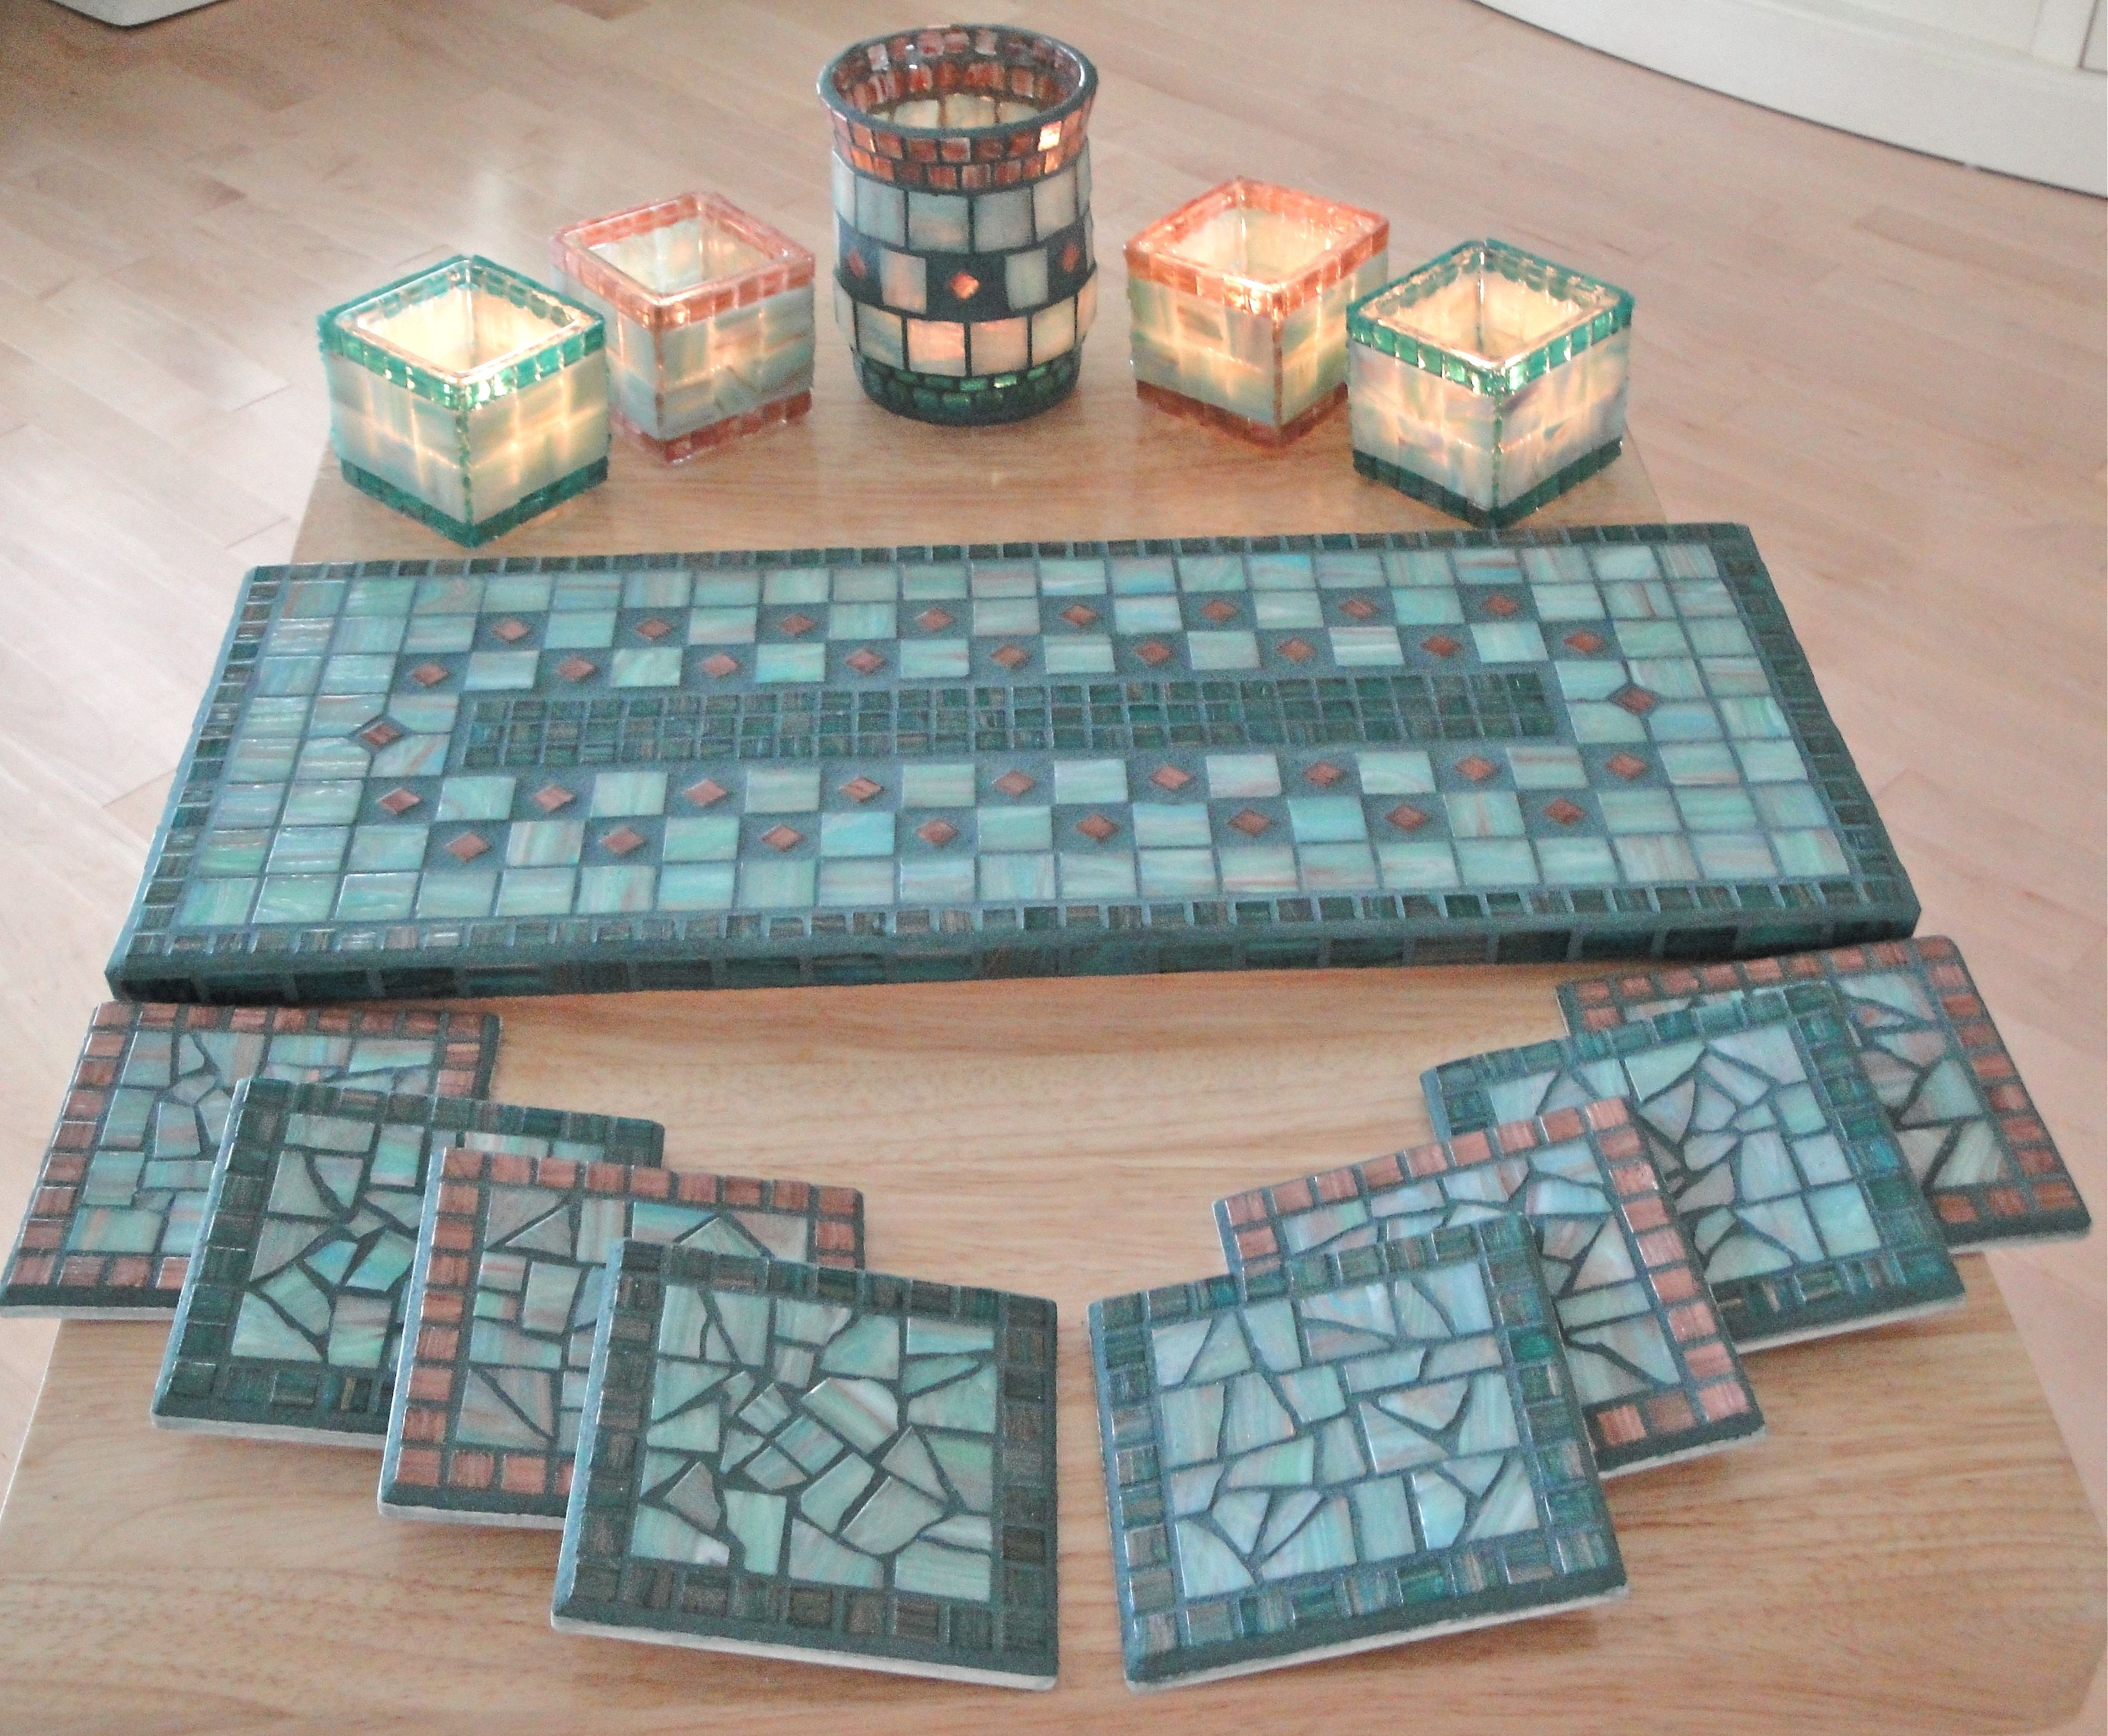 coaster craft ideas mosaic tile tray coasters candle holders my mosaic 1333